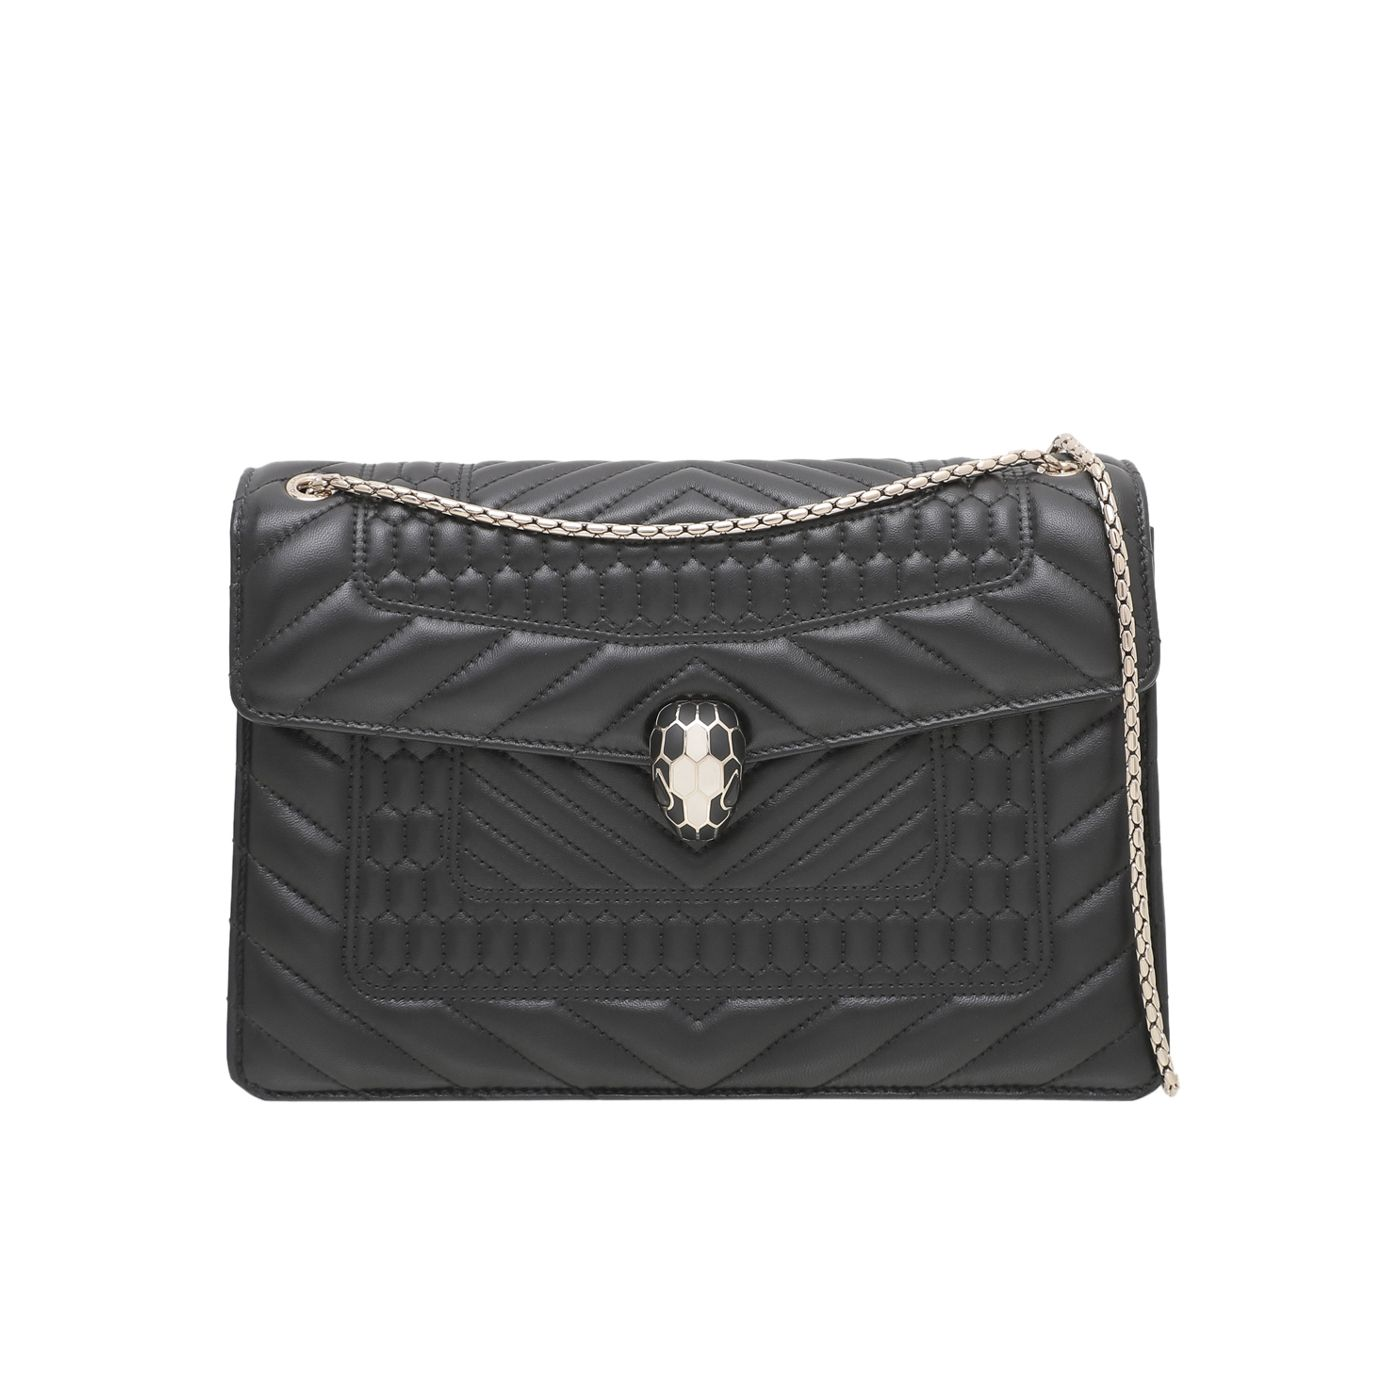 Bvlgari Black Quilted Scaglie Serpenti Forever Bag